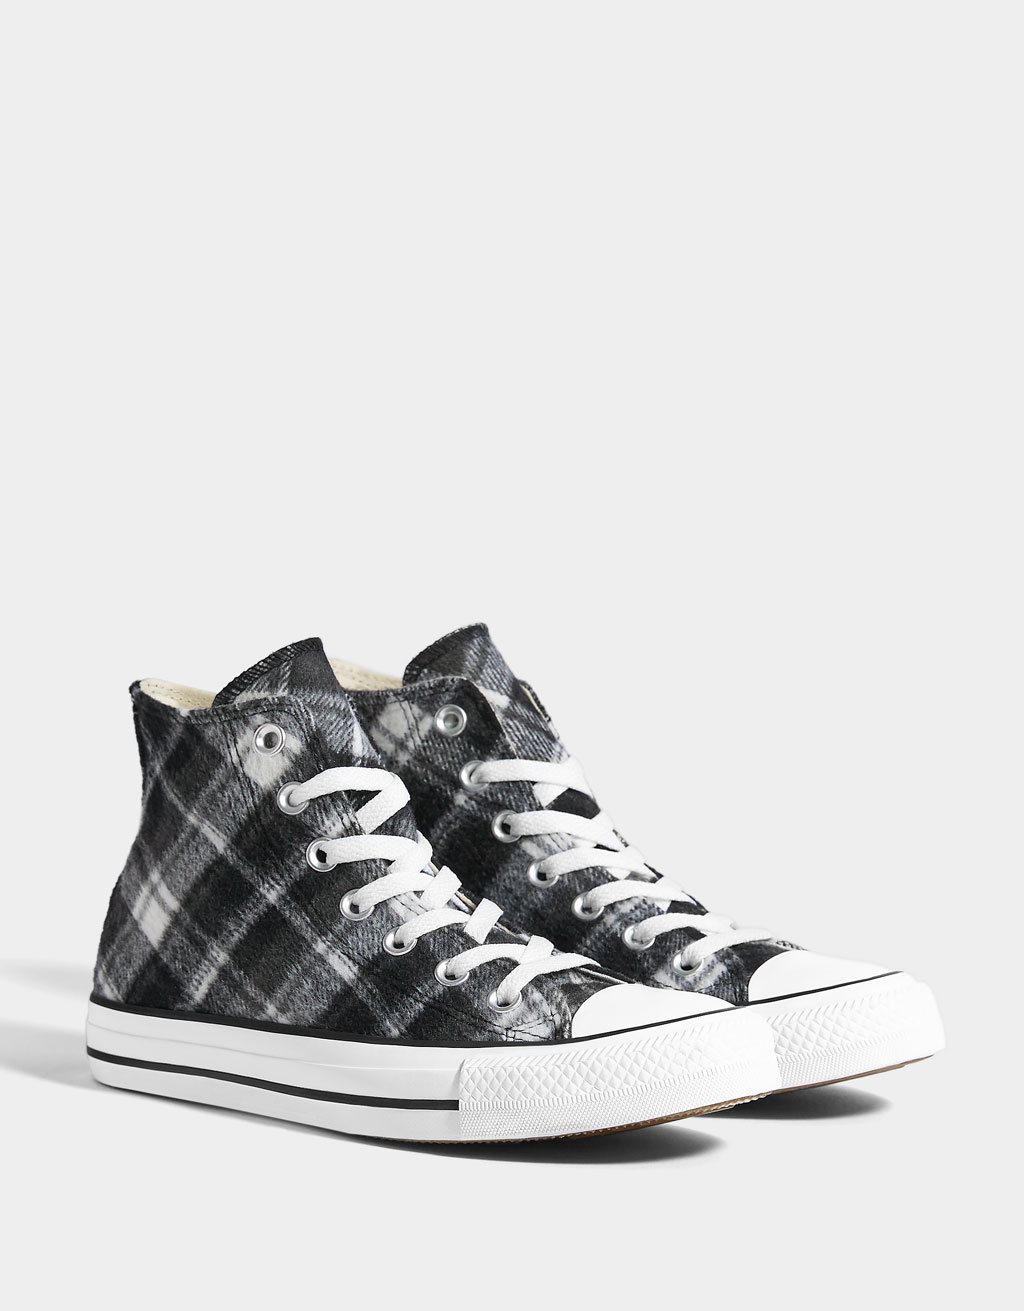 High-top CONVERSE CHUCK TAYLOR ALL STAR